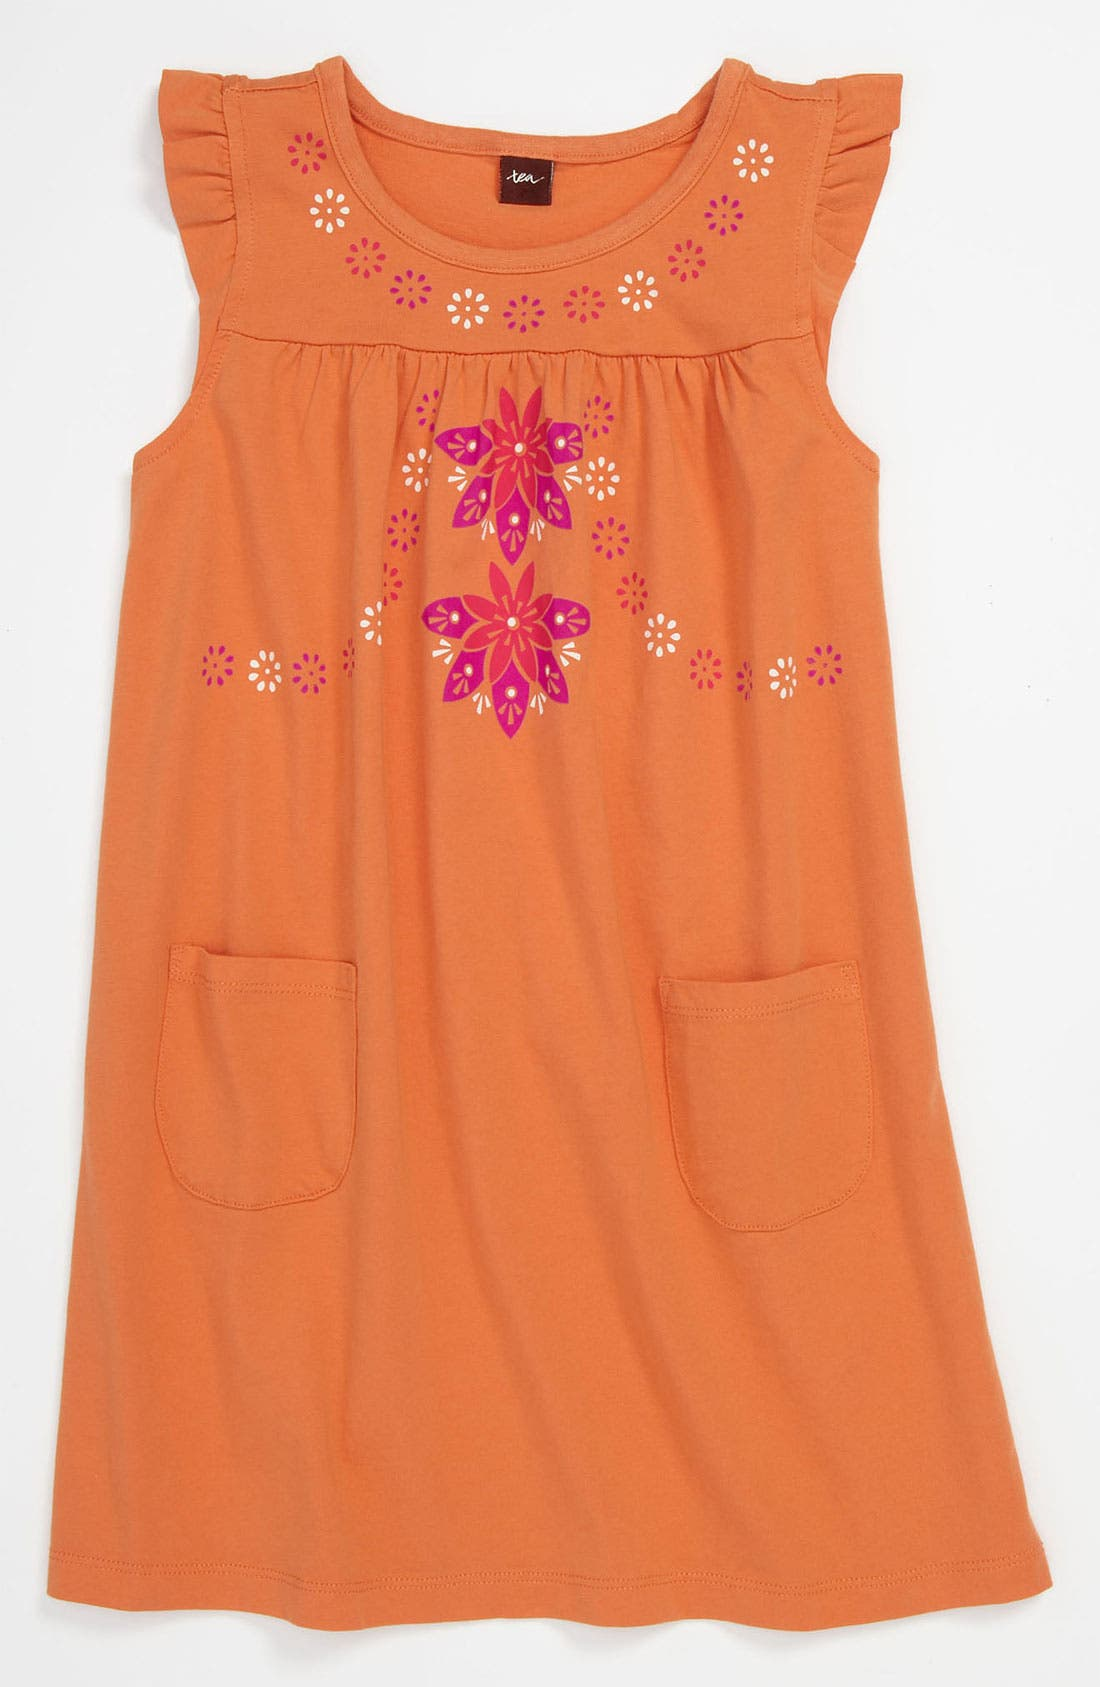 Alternate Image 1 Selected - Tea Collection Empire Waist Dress (Little Girls & Big Girls)